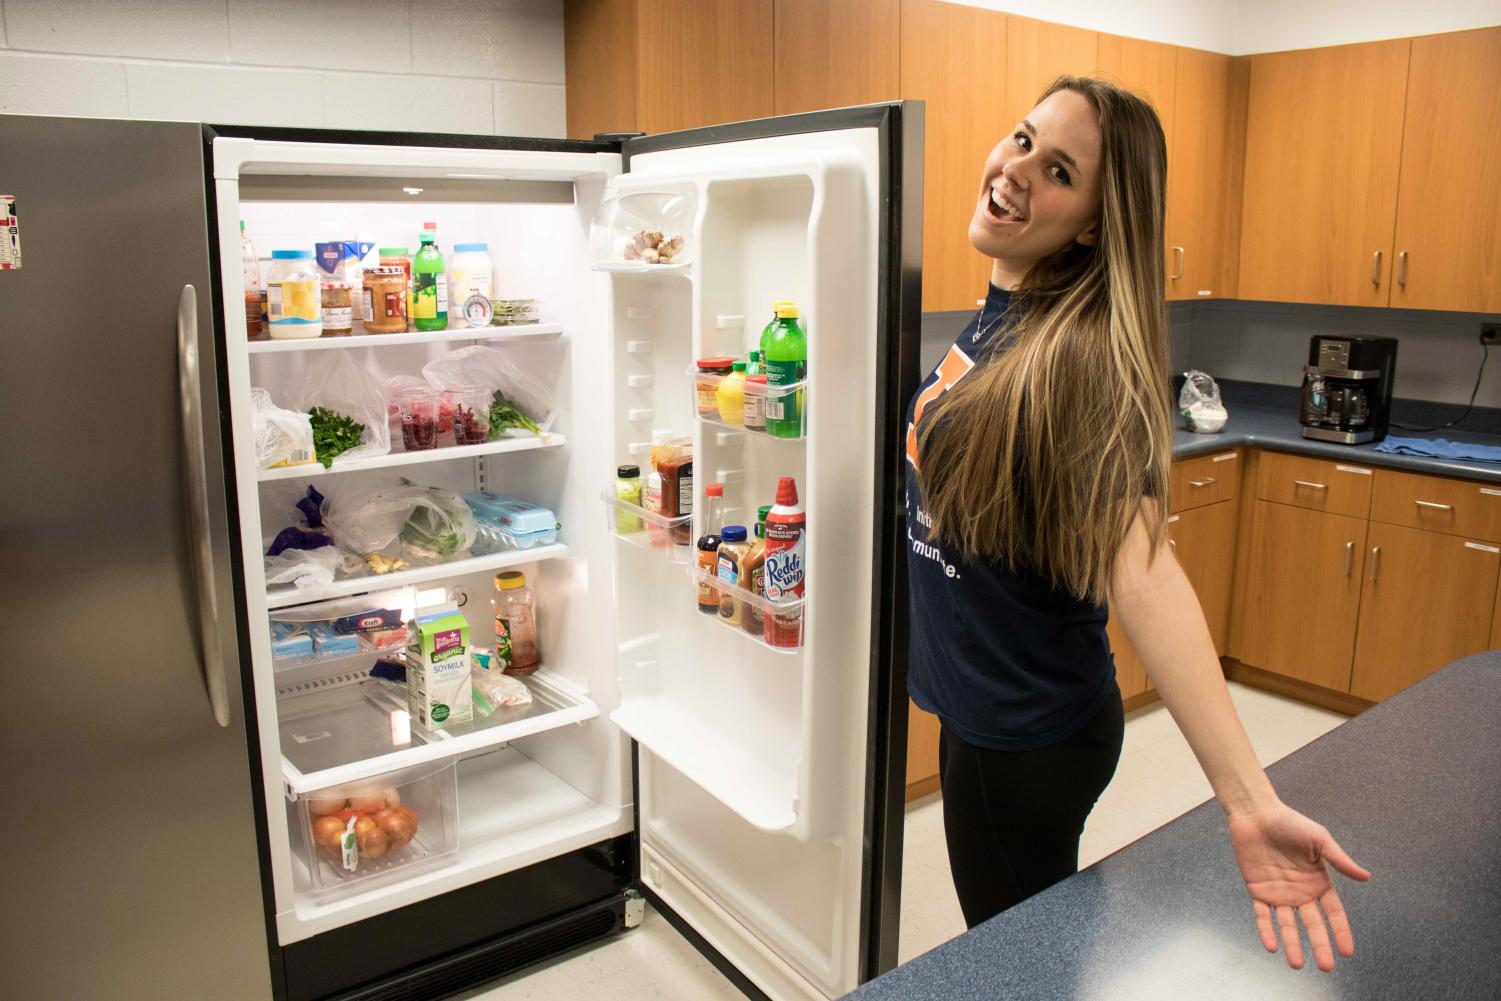 Samantha Gerry stands in the Instructional Kitchen at the ARC where sessions are held to help students gain a healthier lifestyle.